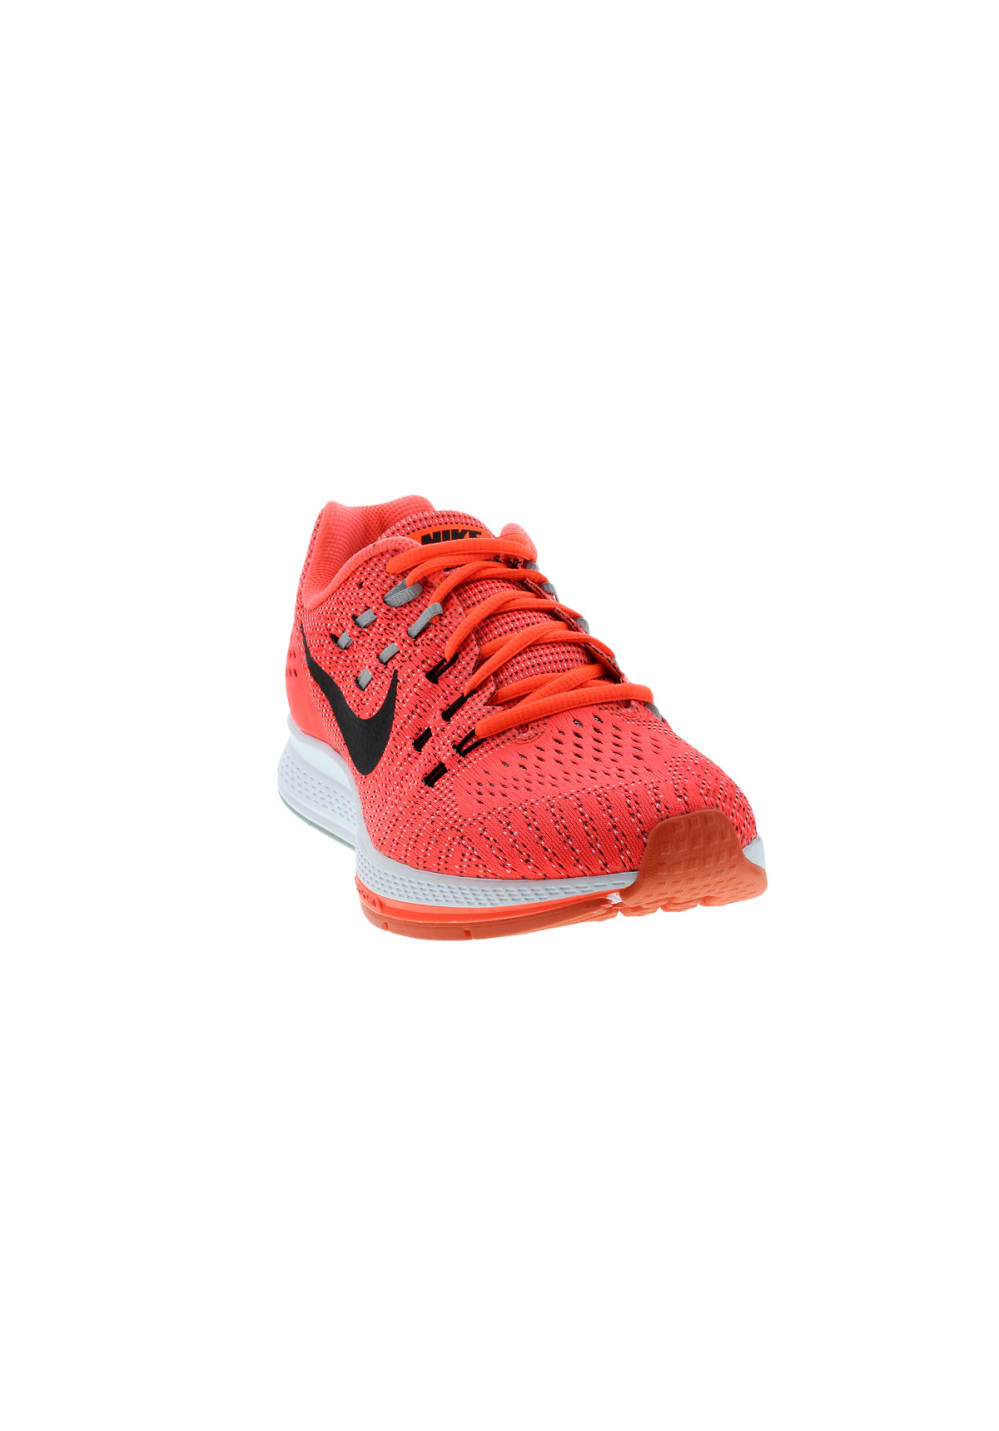 classic fit 72357 5f1c9 Nike Air Zoom Structure 19 Running Shoe - Running shoes for Men - Red